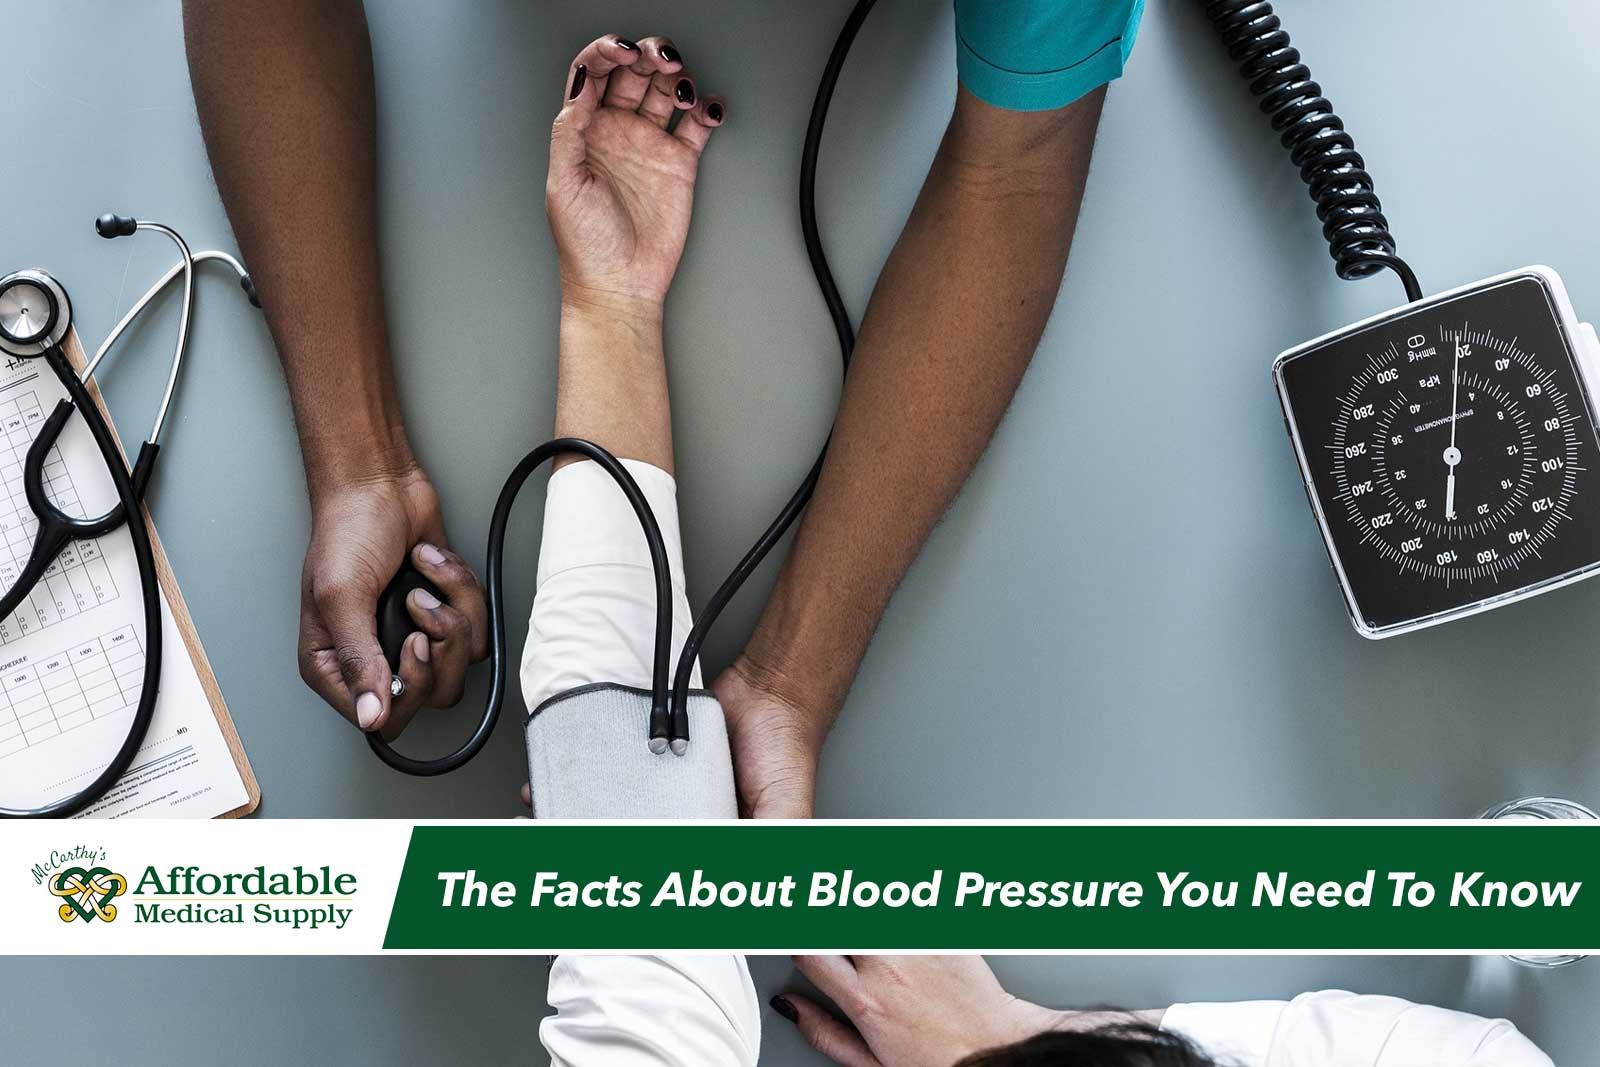 Facts About Blood Pressure